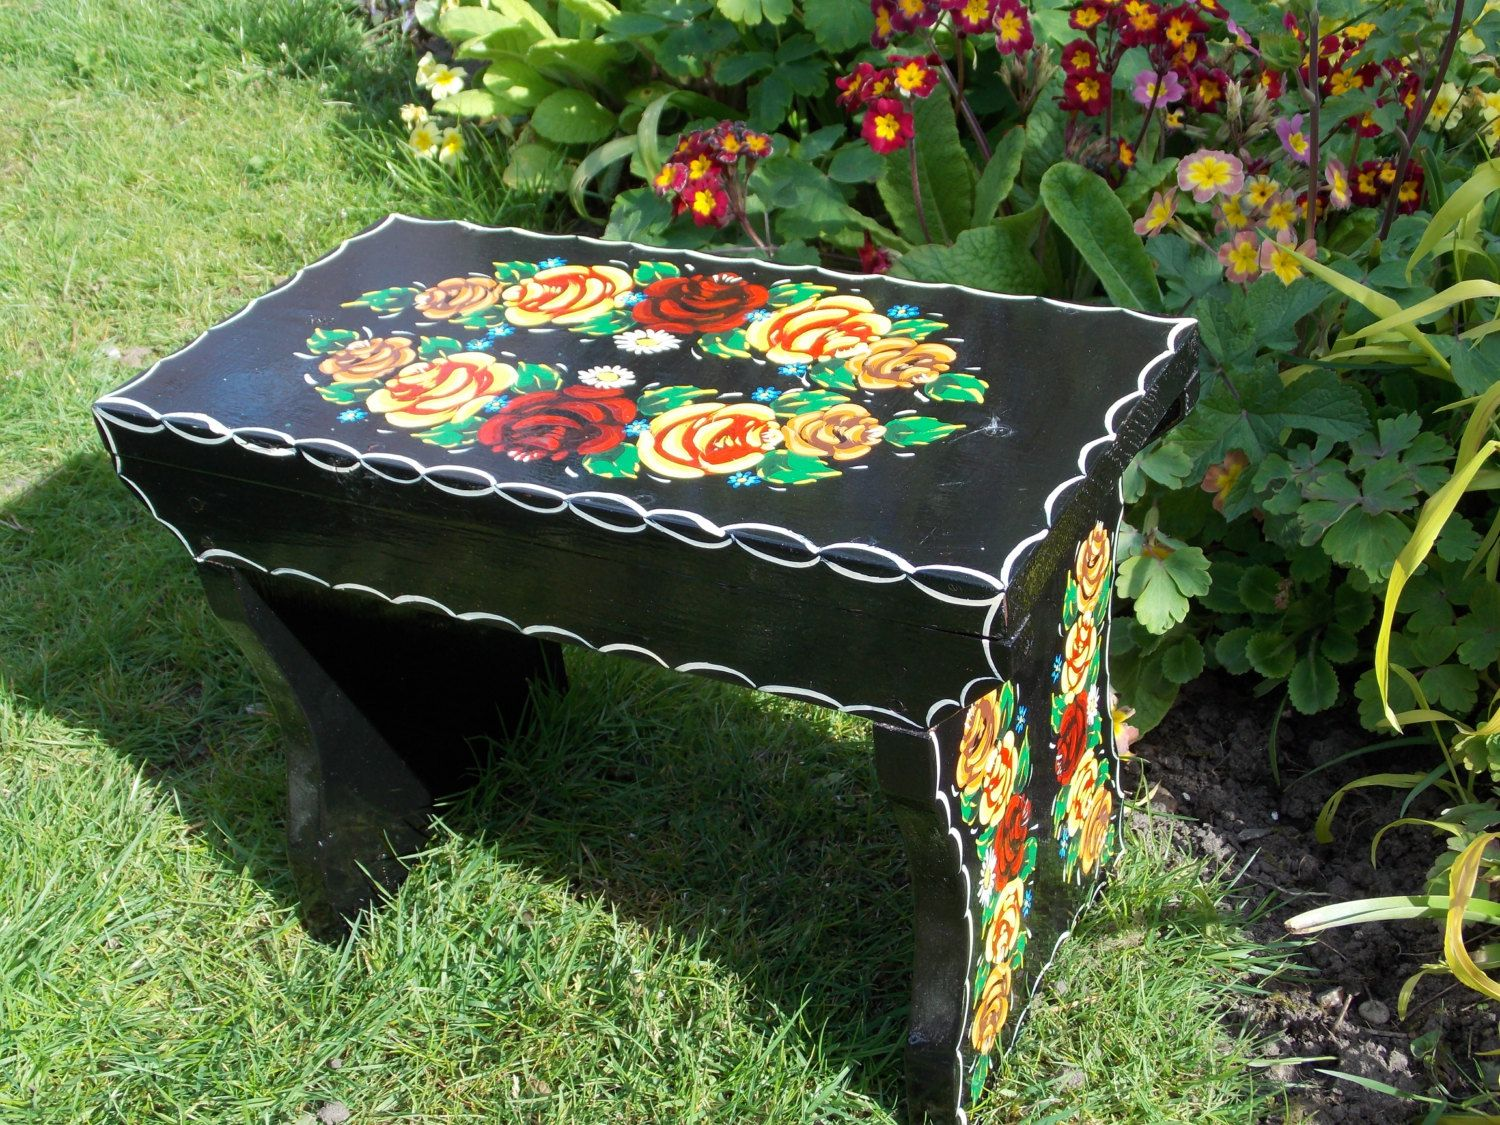 Black Wooden Step Stool.Traditional Canal Ware Narrowboat. Unique Design.100% & Black Wooden Step Stool.Traditional Canal Ware Narrowboat. Unique ... islam-shia.org